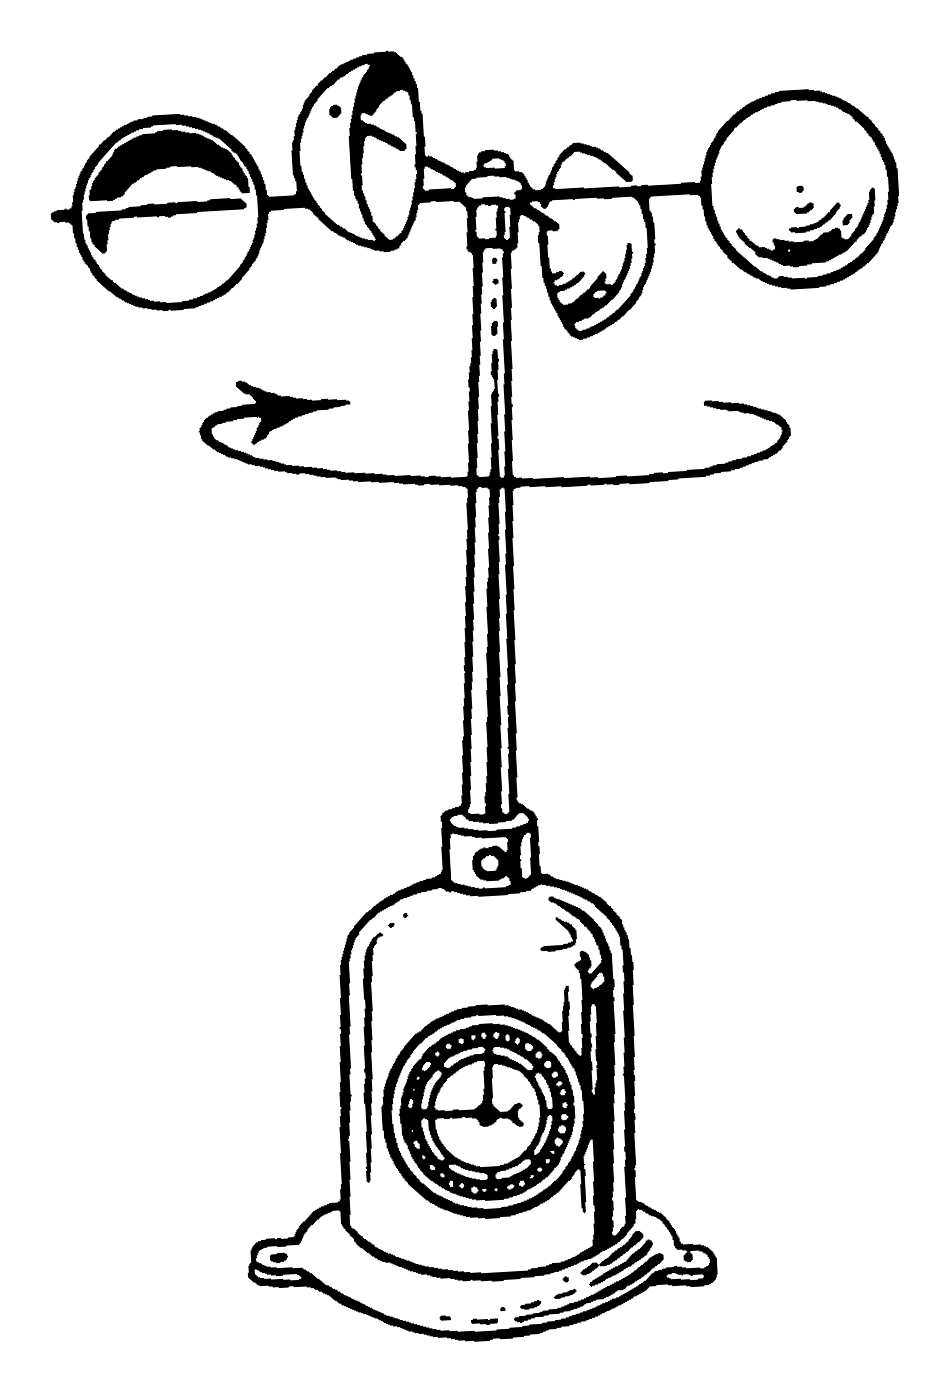 Make A Very Simple Windmill additionally A Basic Guide To The Parts Of A Bow besides Homemade Wind Turbine Parts also Fay marine yacht pl besides Analog To Digital Converter Pic. on diagram of anemometer